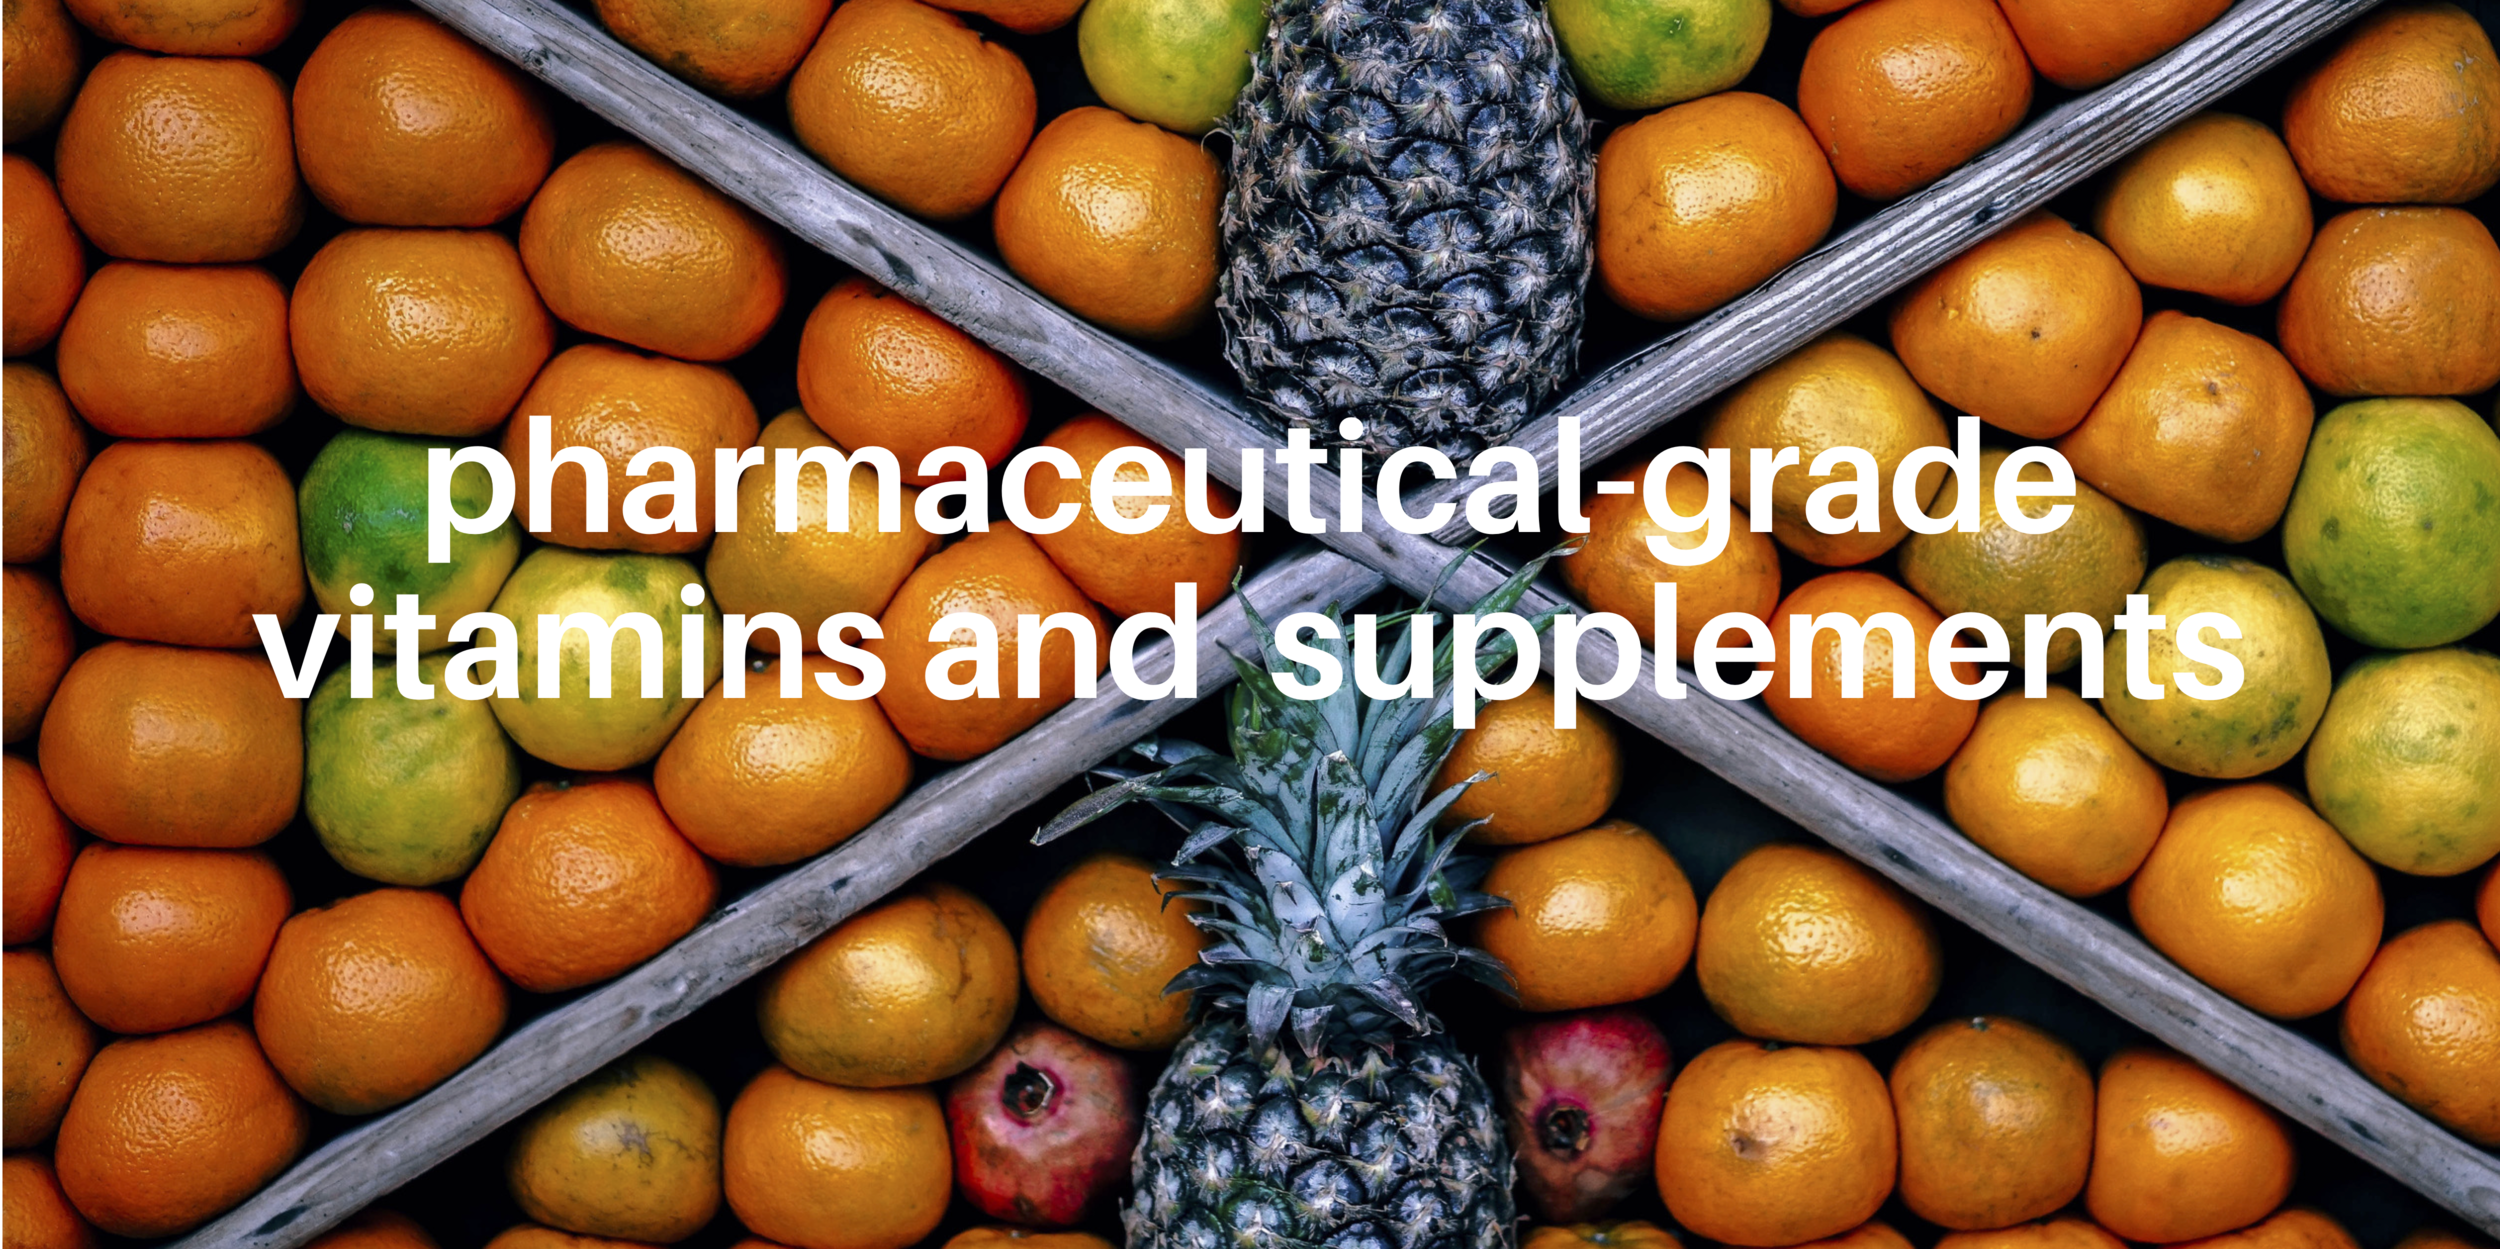 Harness the power of pharmaceutical-grade vitamins & supplements at Wellness Pharmacy in Cary.